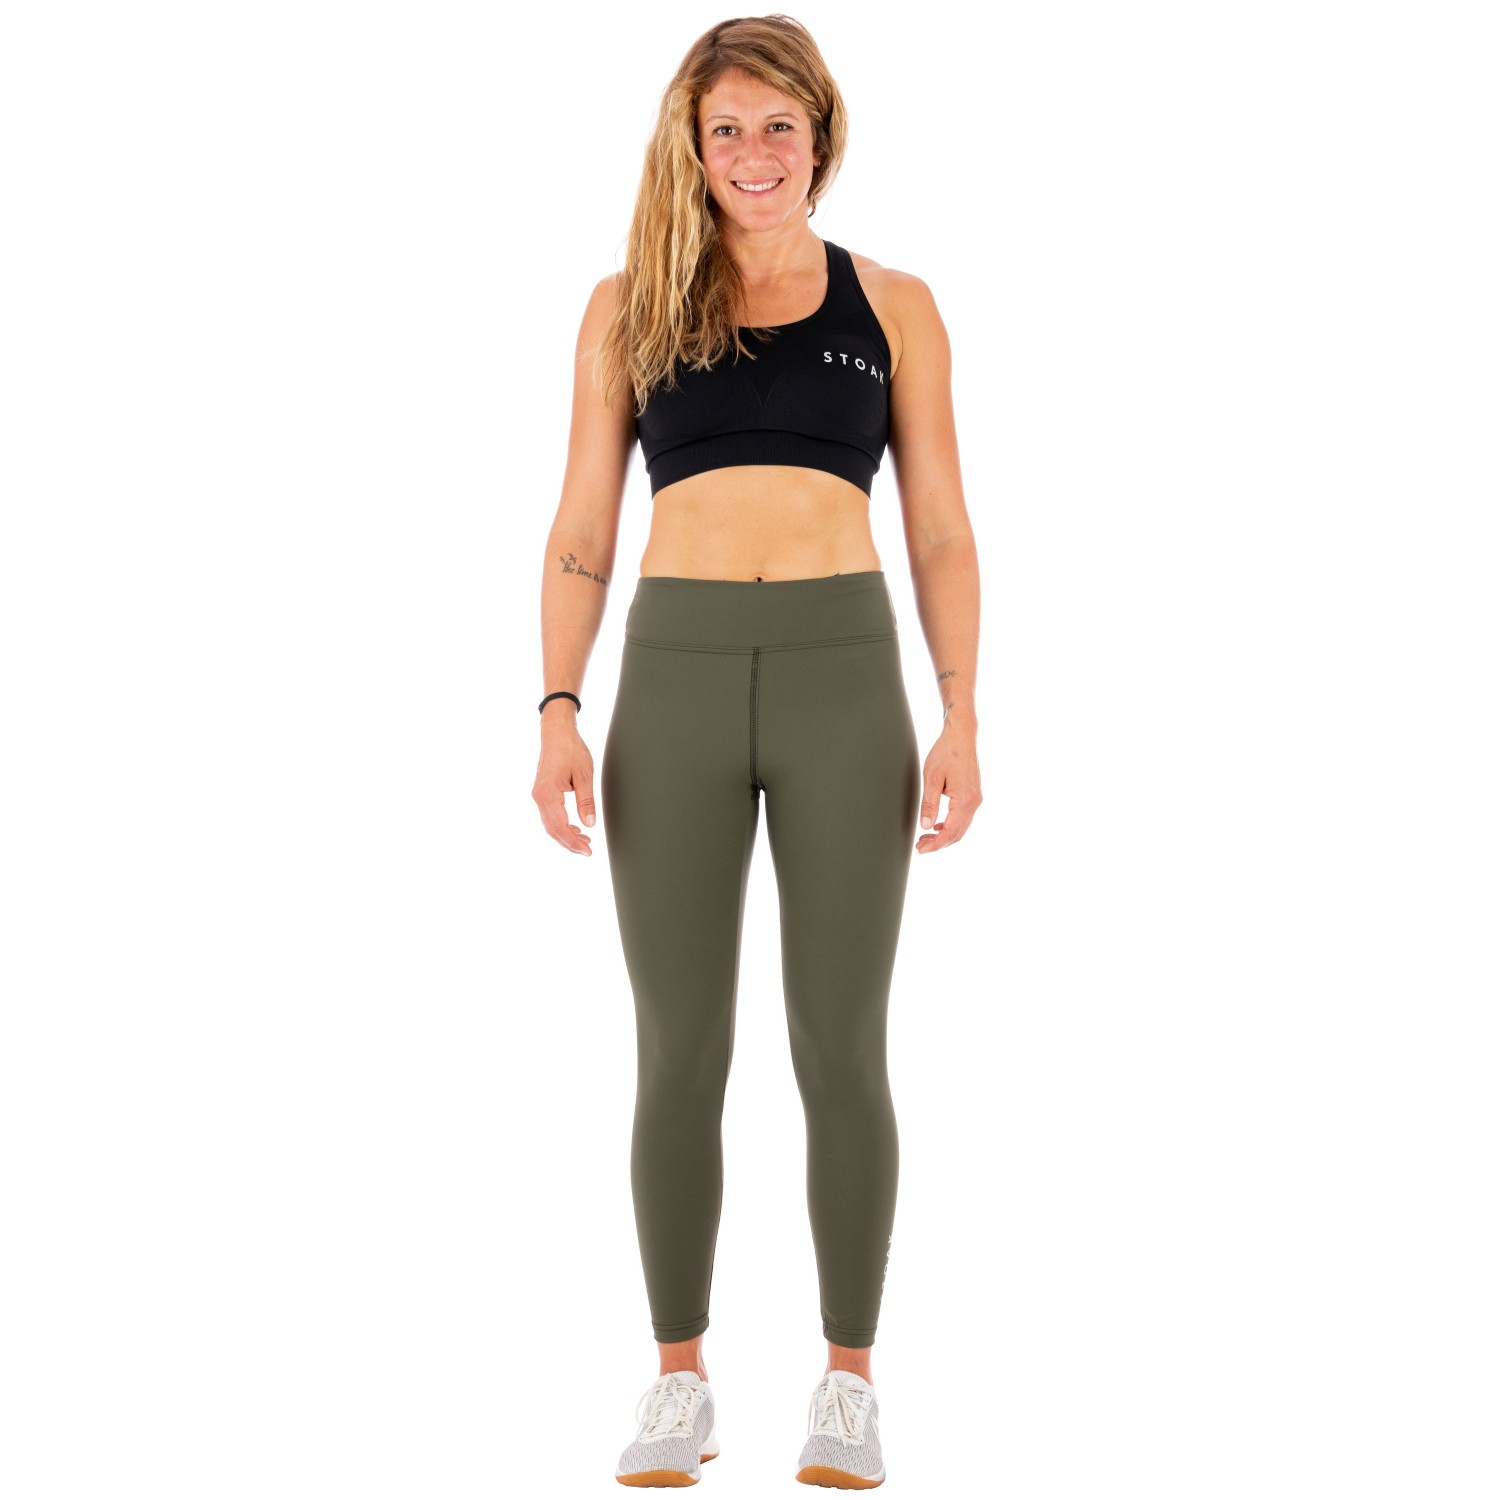 STOAK CARBON - COMBAT Package Sports Bra + Leggings